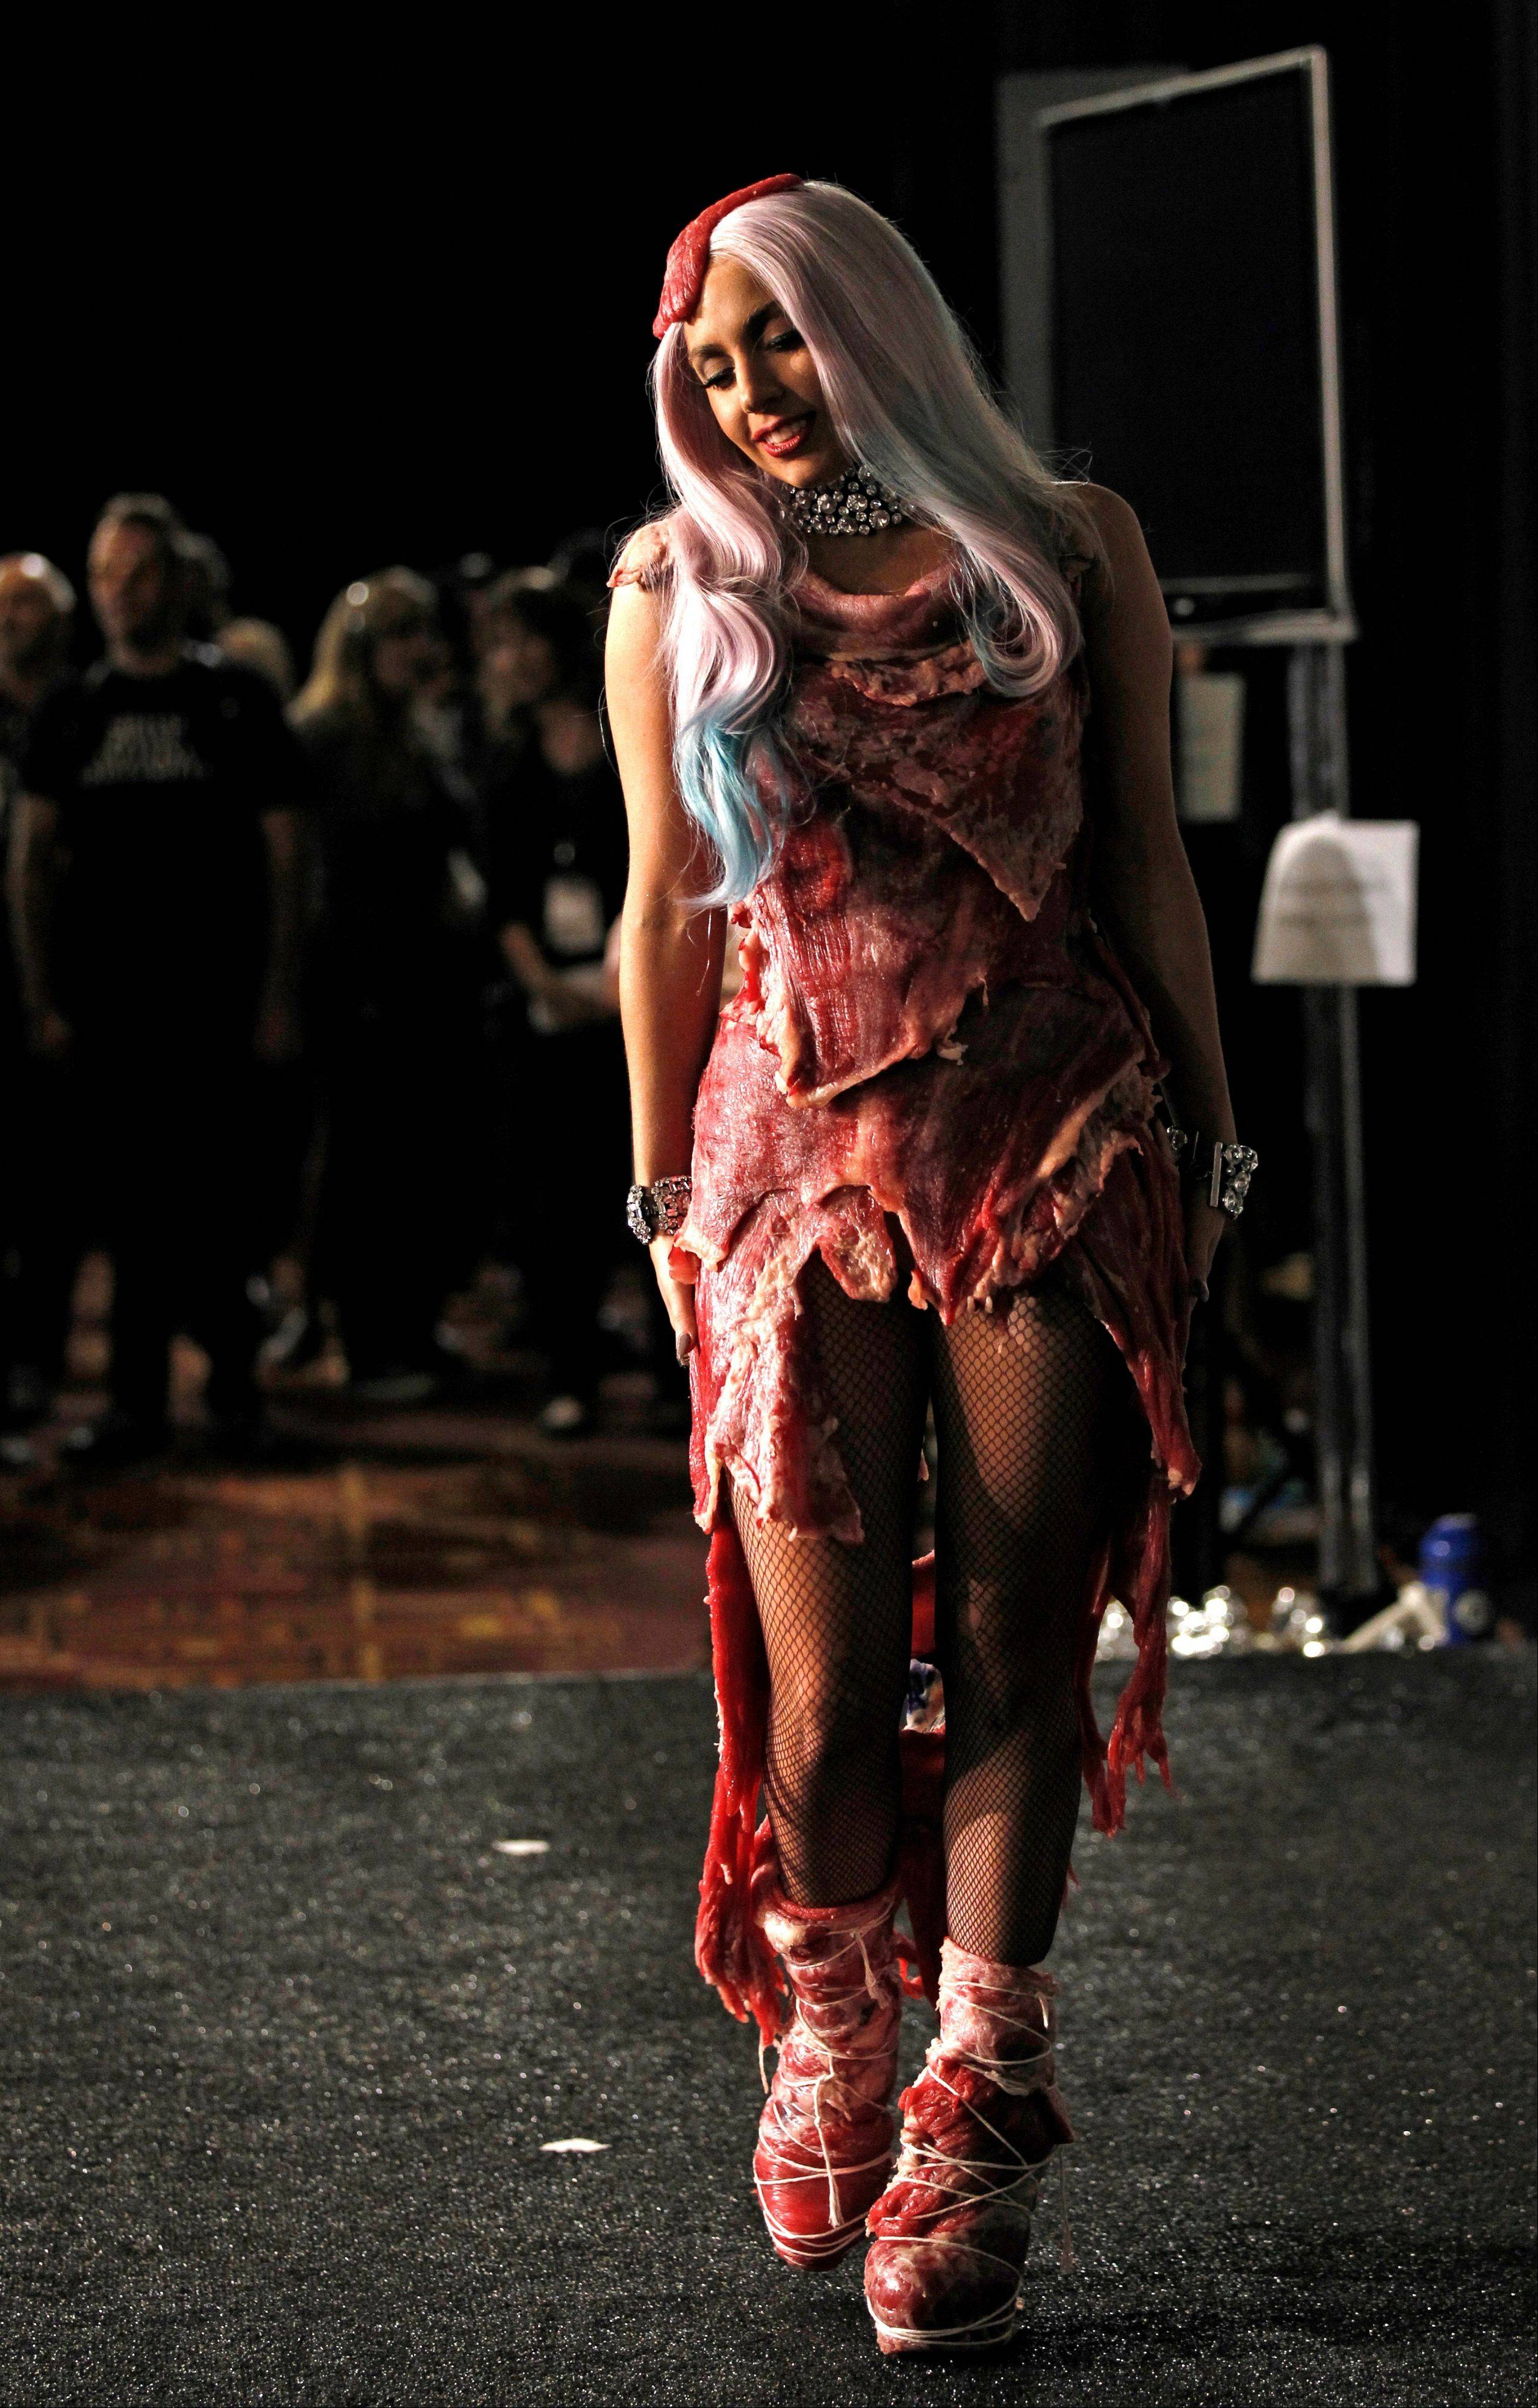 Lady Gaga�s dress made of meat has made its way to Washington, along with Loretta Lynn�s song about �The Pill� and other relics from music history. It will be displayed at the National Museum of Women in the Arts with an explanation of her political message.